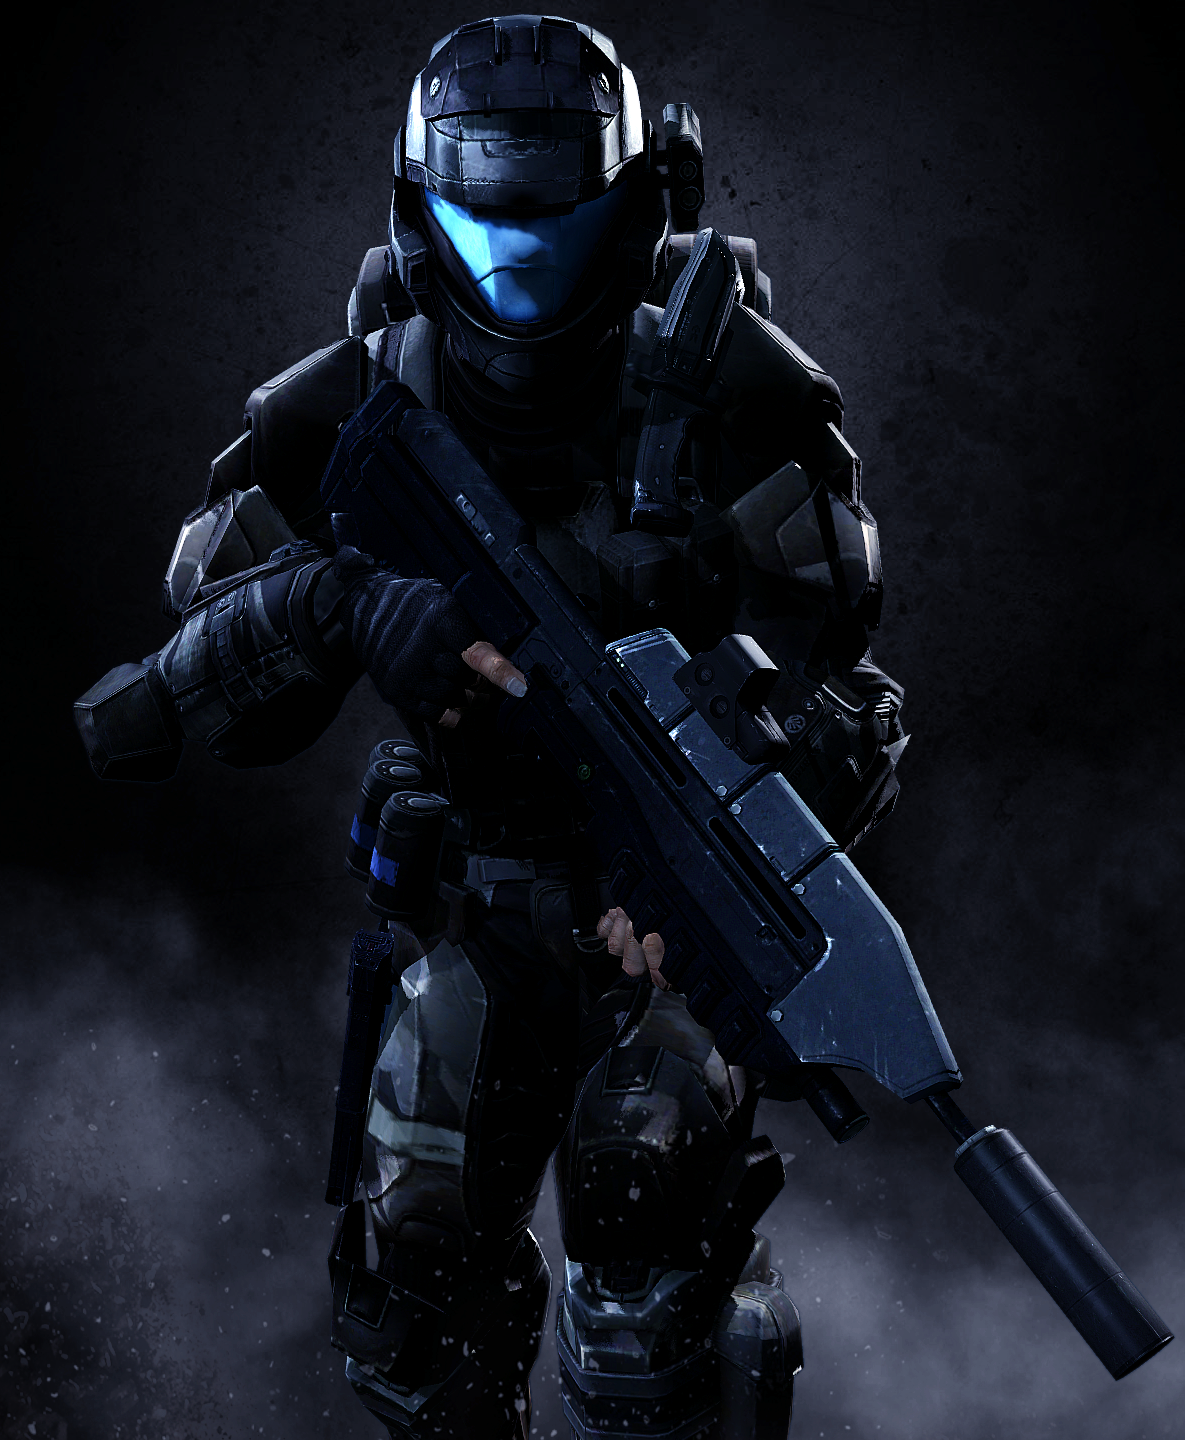 Pin by captain morgan on cosplay odst pinterest gaming video discover ideas about halo 3 odst publicscrutiny Image collections